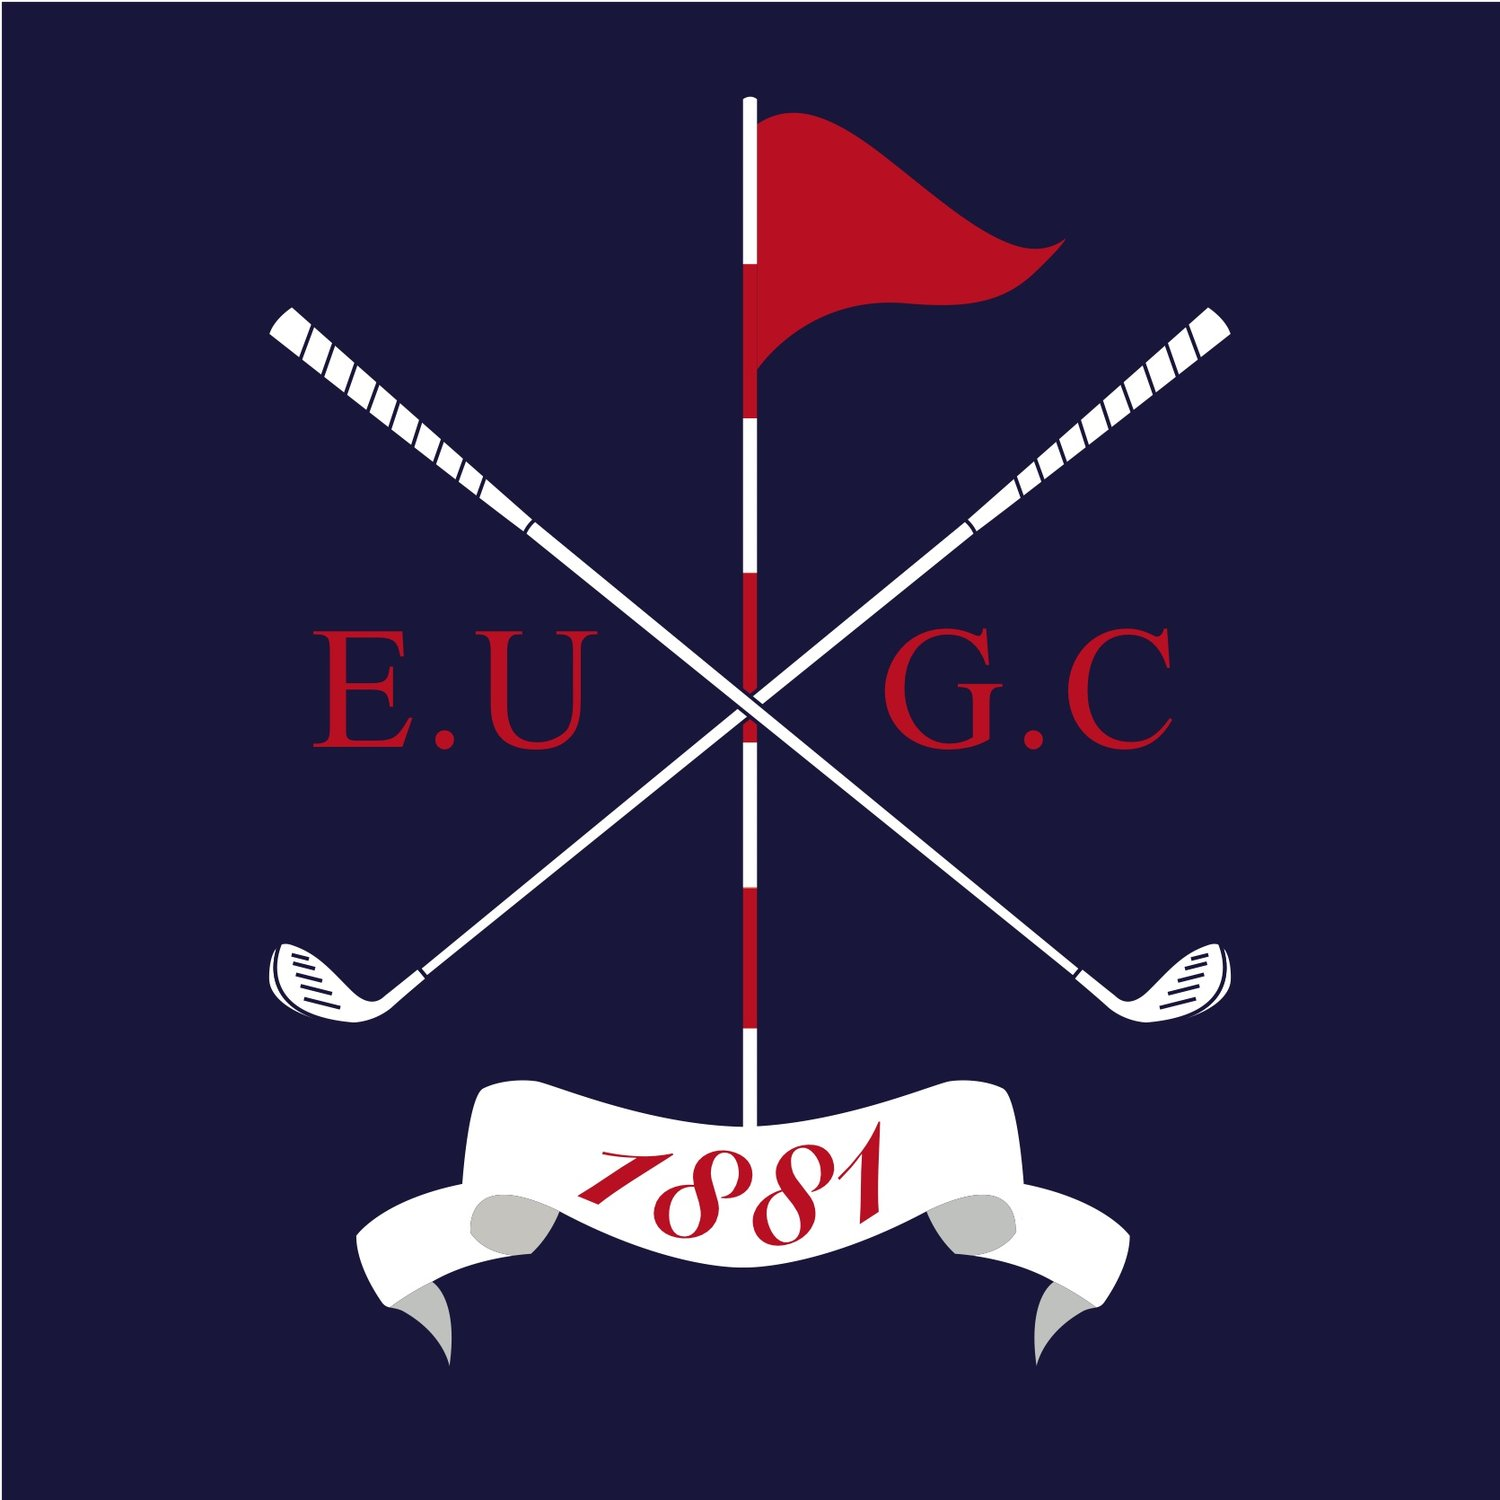 Edinburgh University Golf Club